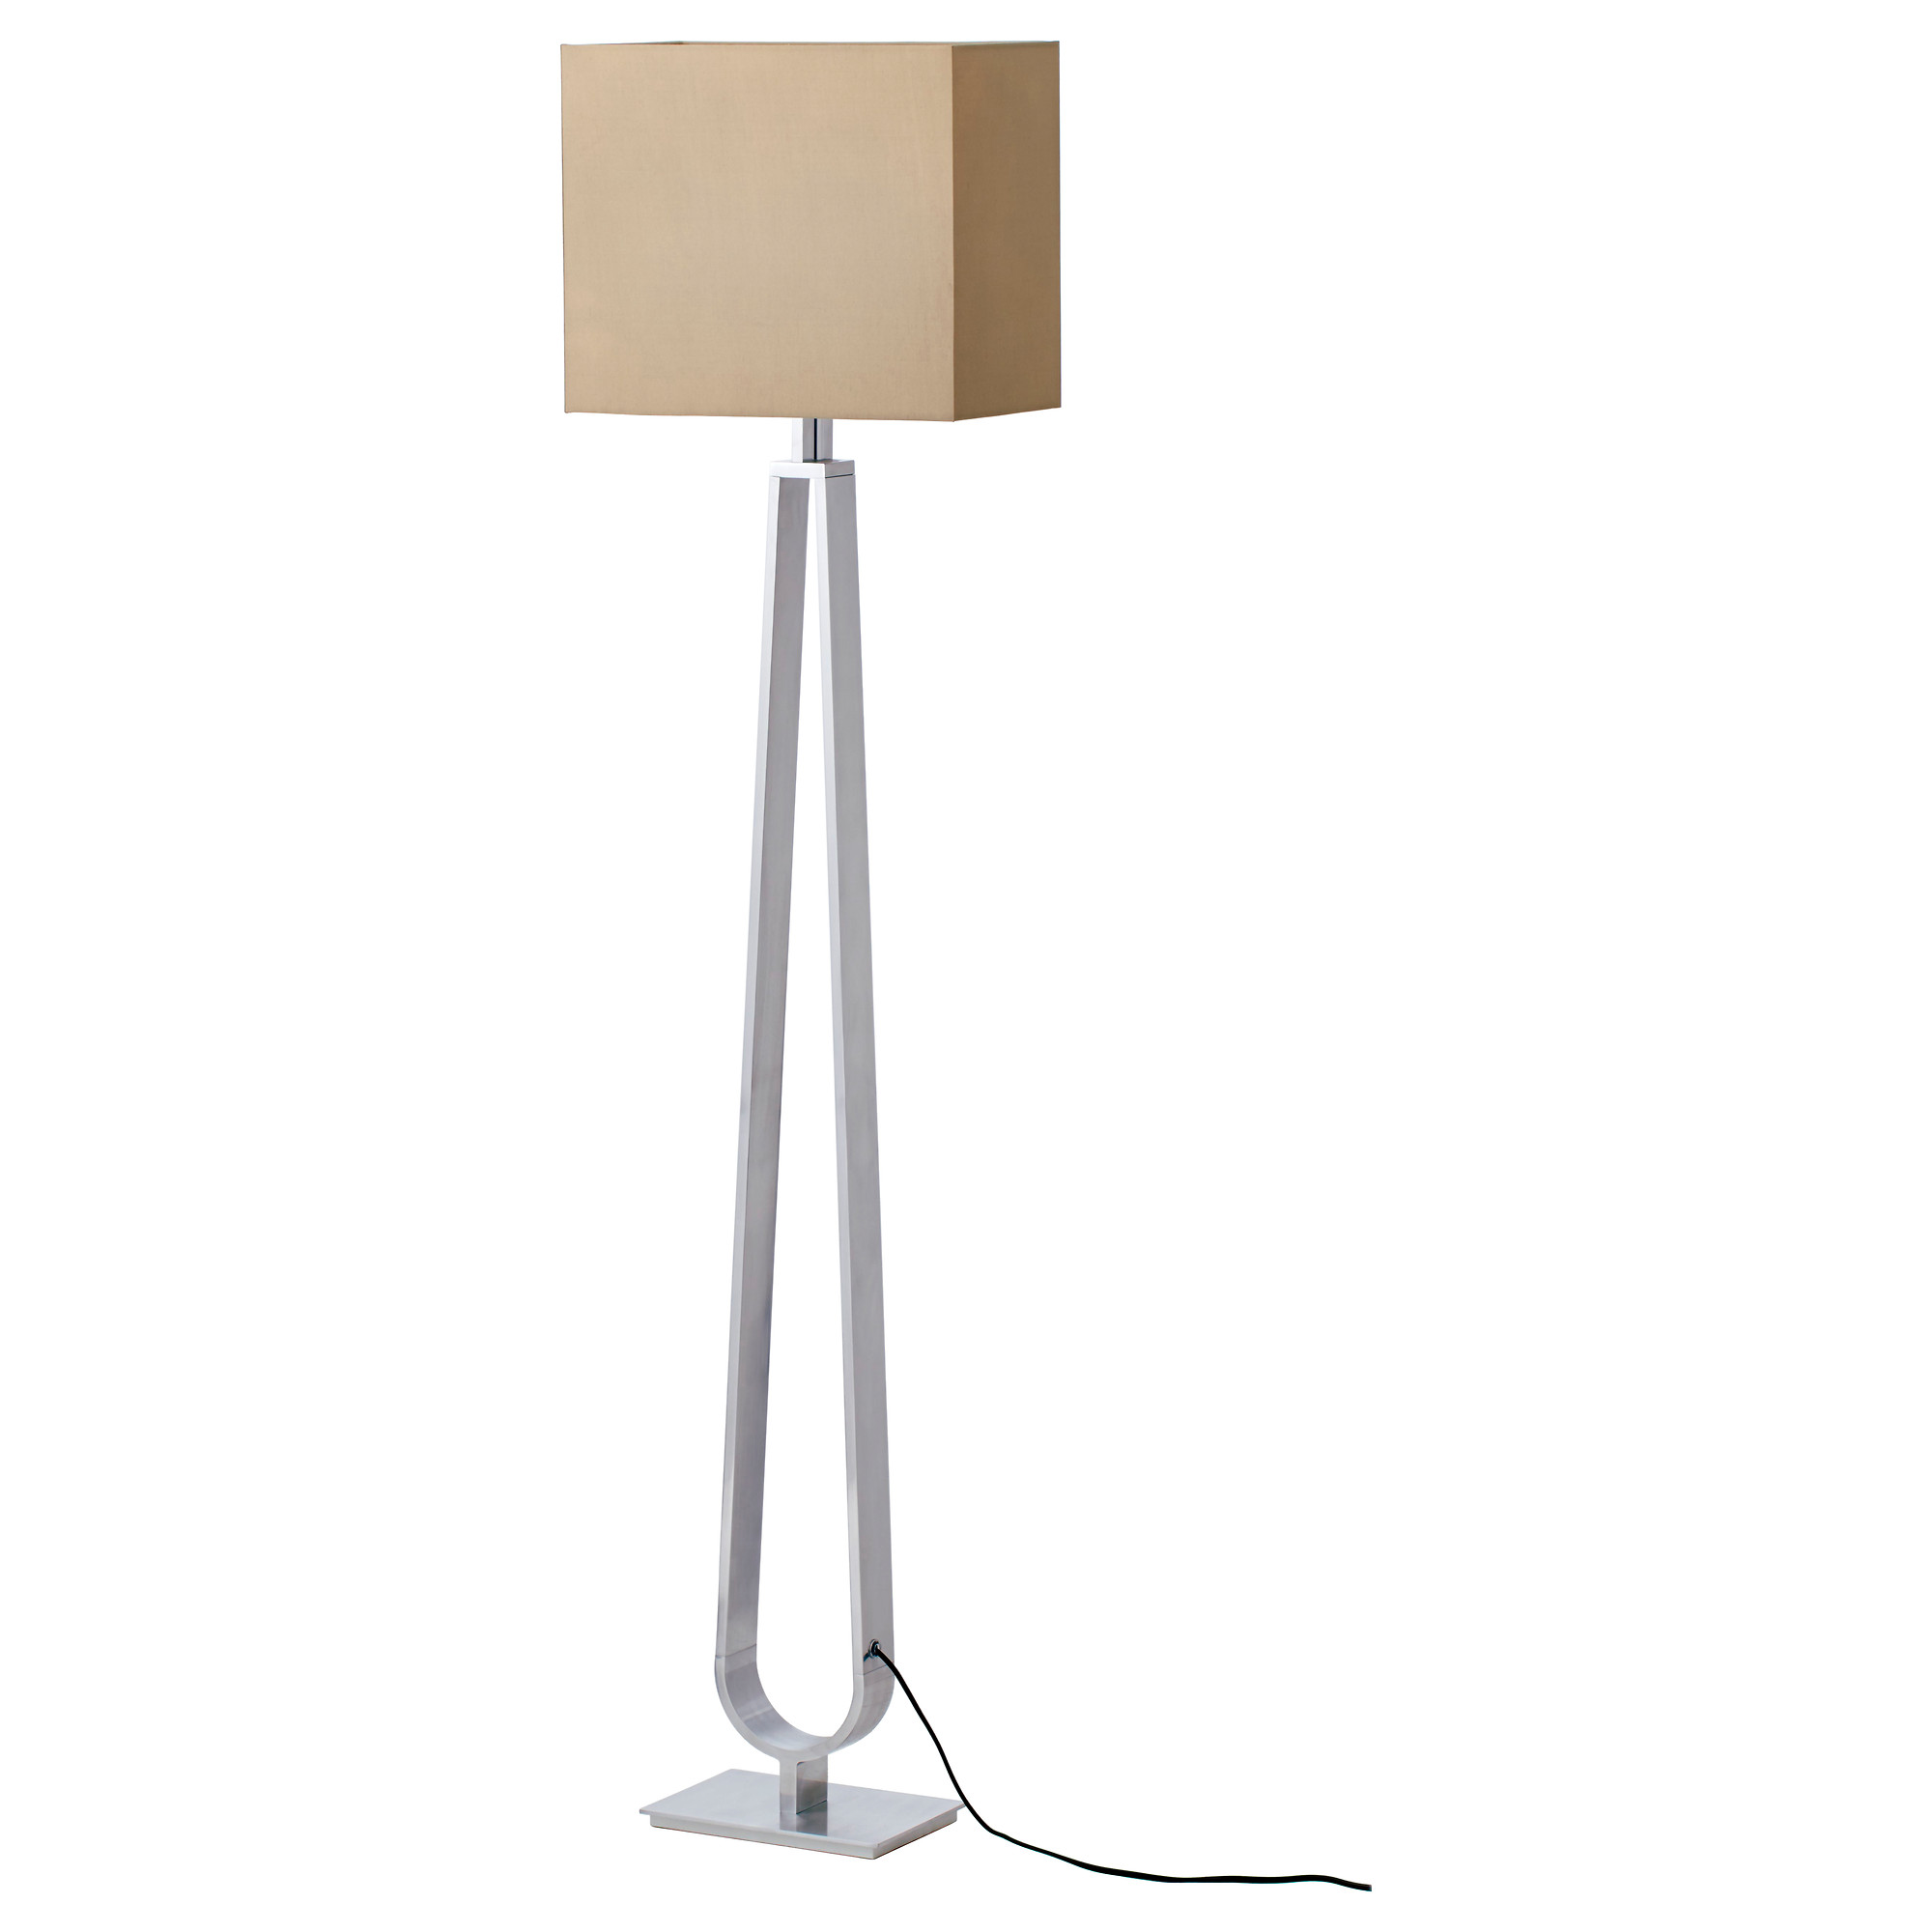 Stand Up Light: 10 Facts About Stand Up Lamps